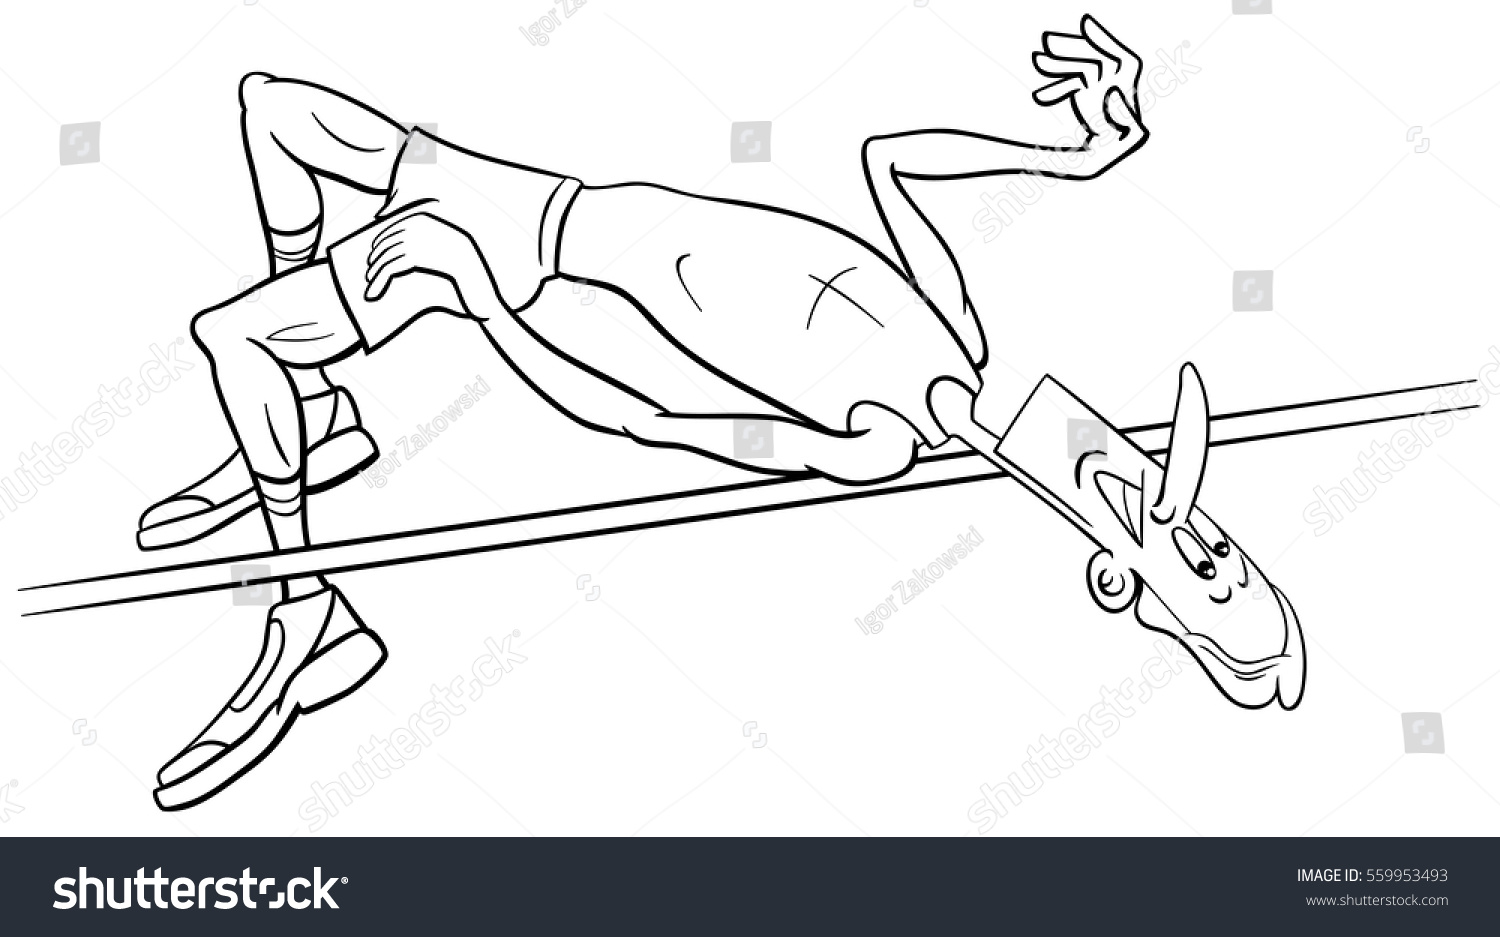 black and white cartoon illustrations of high jump sportsman or athlete training coloring page